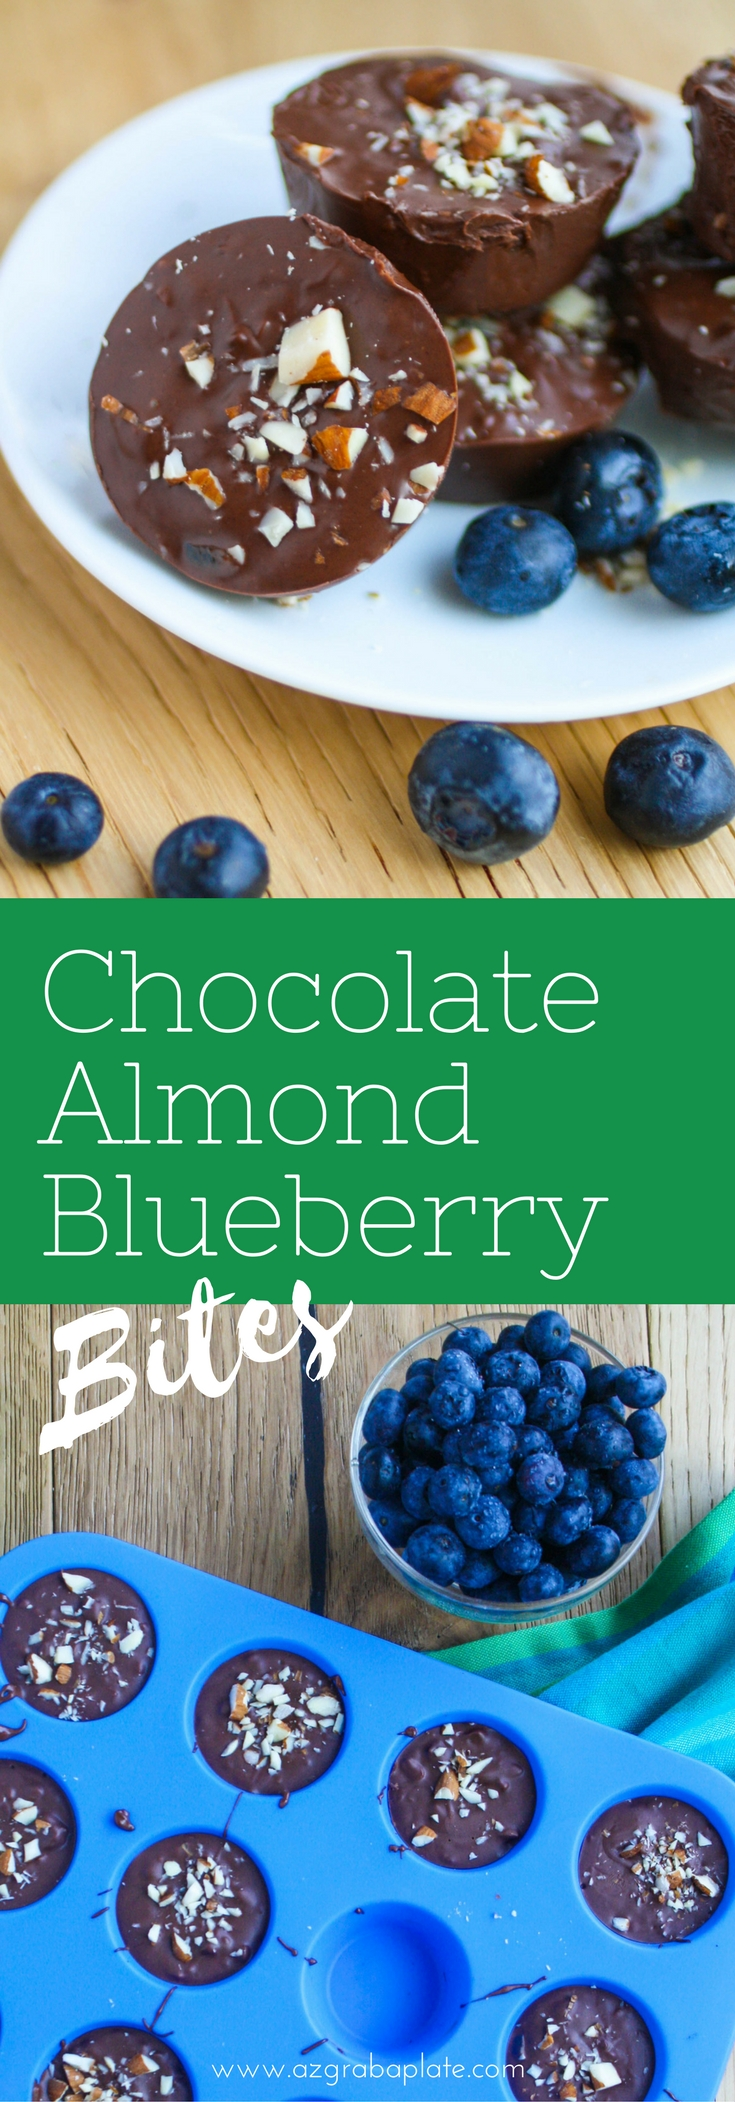 Chocolate Almond Blueberry Bites are a fun treat. These easy-to-make candies will satisfy your sweet tooth!